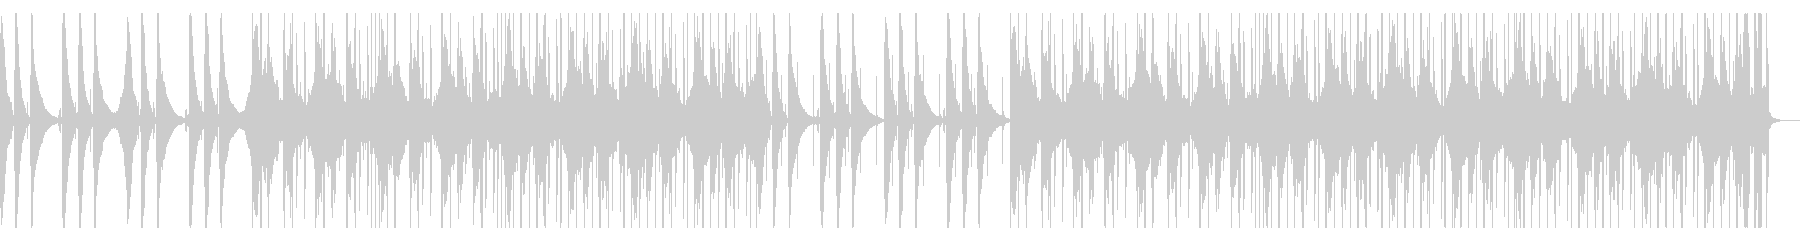 Calm down. memory. Vlog. Chill2's unreproduced waveform